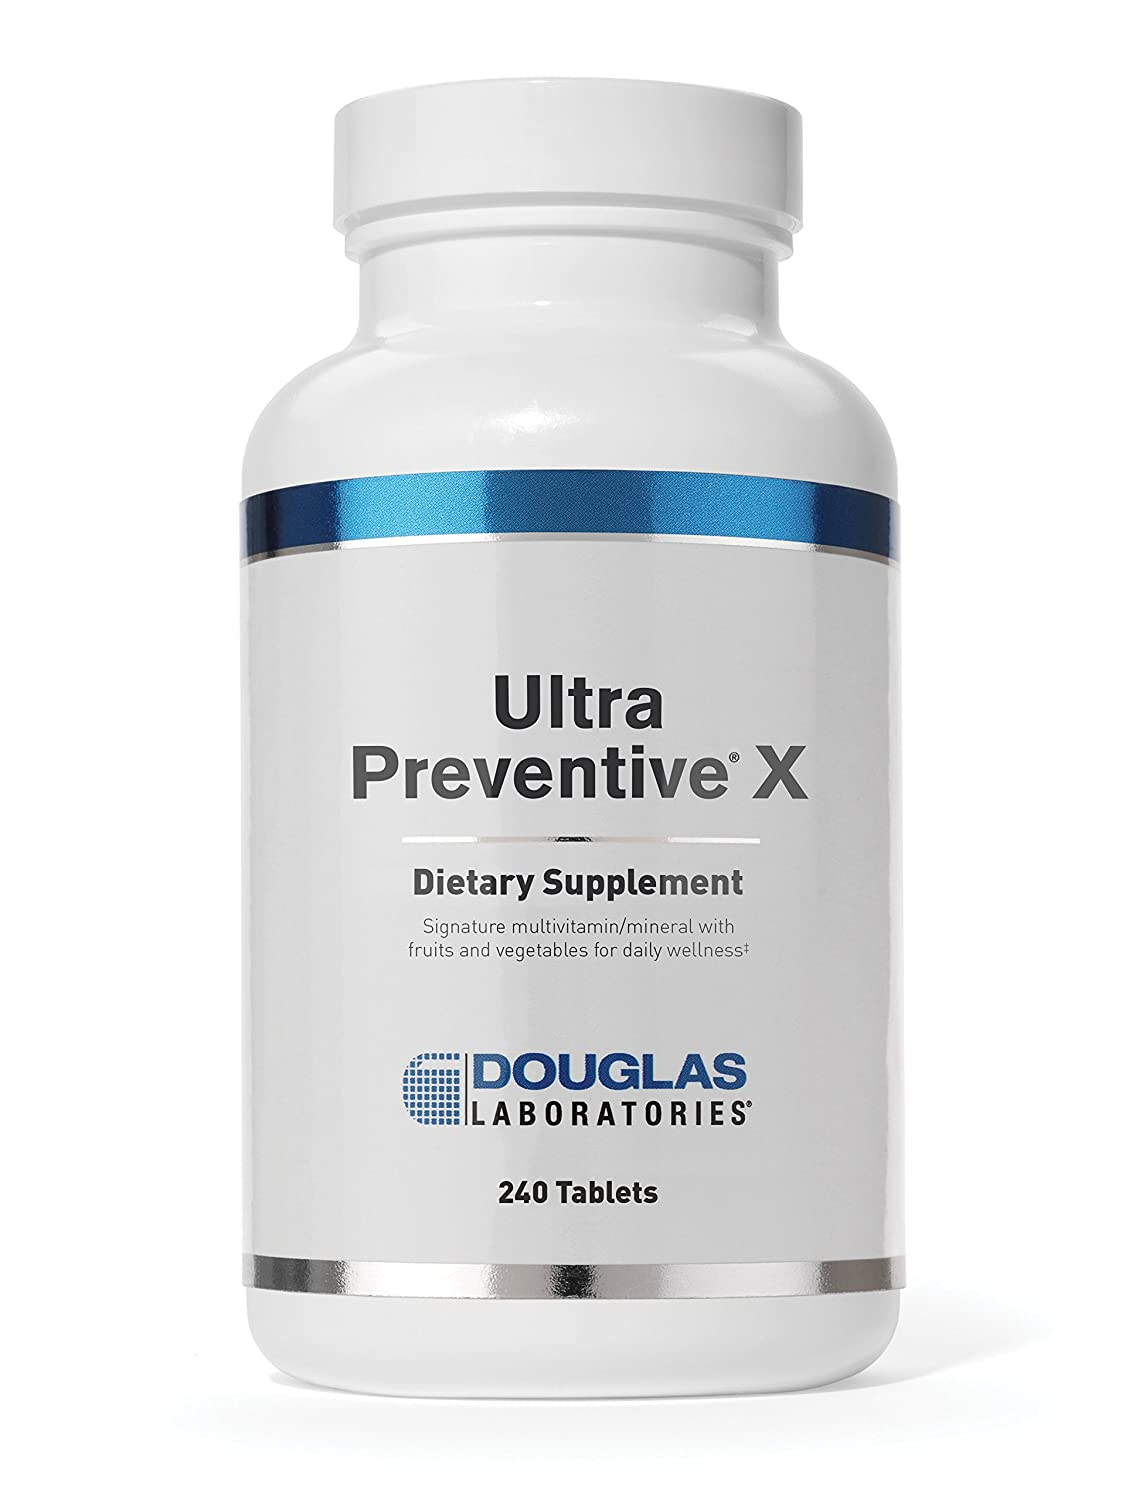 Douglas Laboratories – Ultra Preventive X – Multivitamin Mineral Formula with Fruits and Vegetables for Daily Wellness* – 240 Tablets